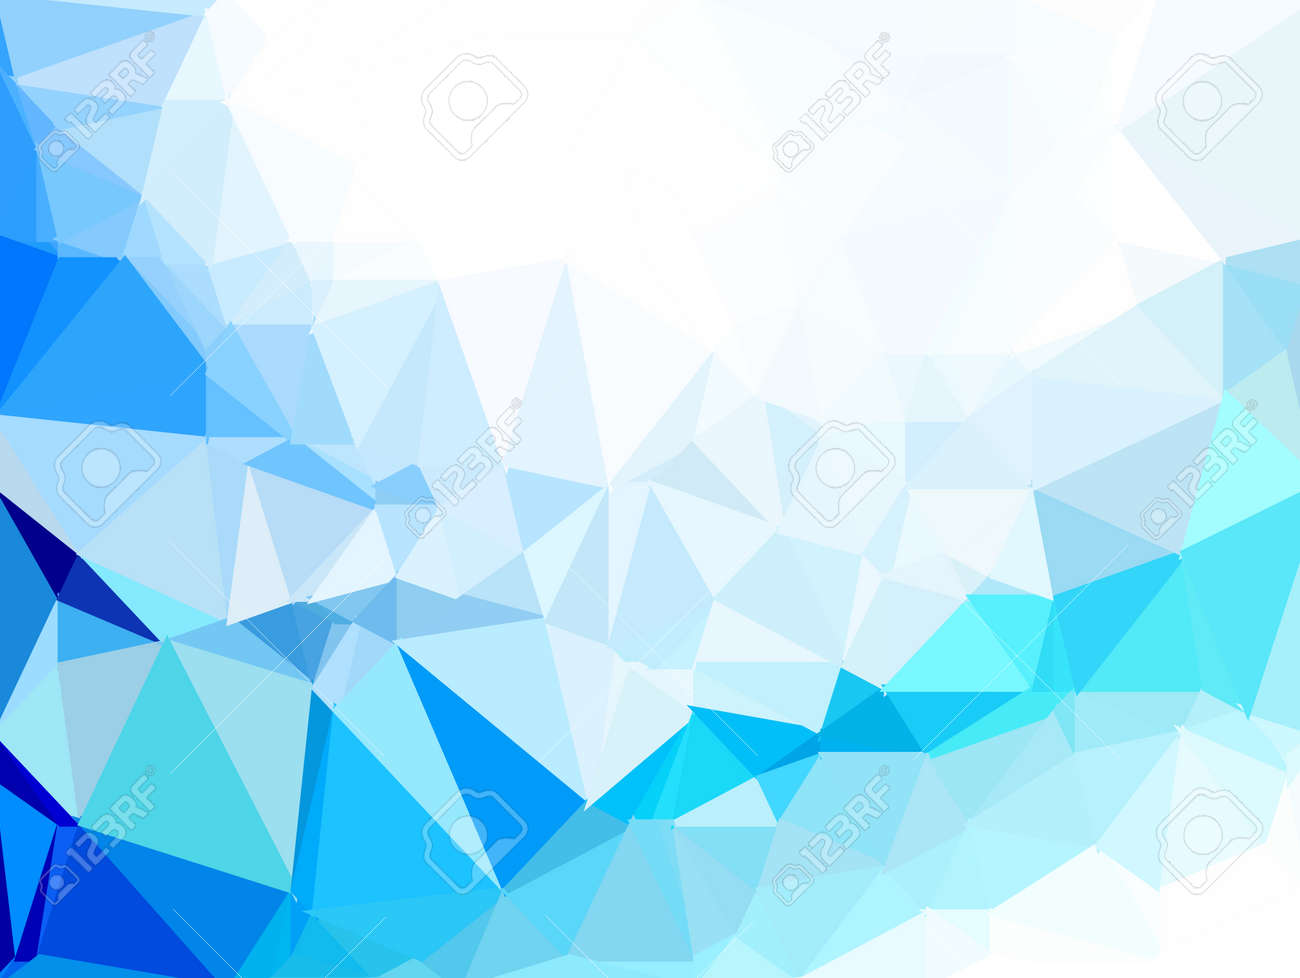 blue polygon image texture background - 146984398